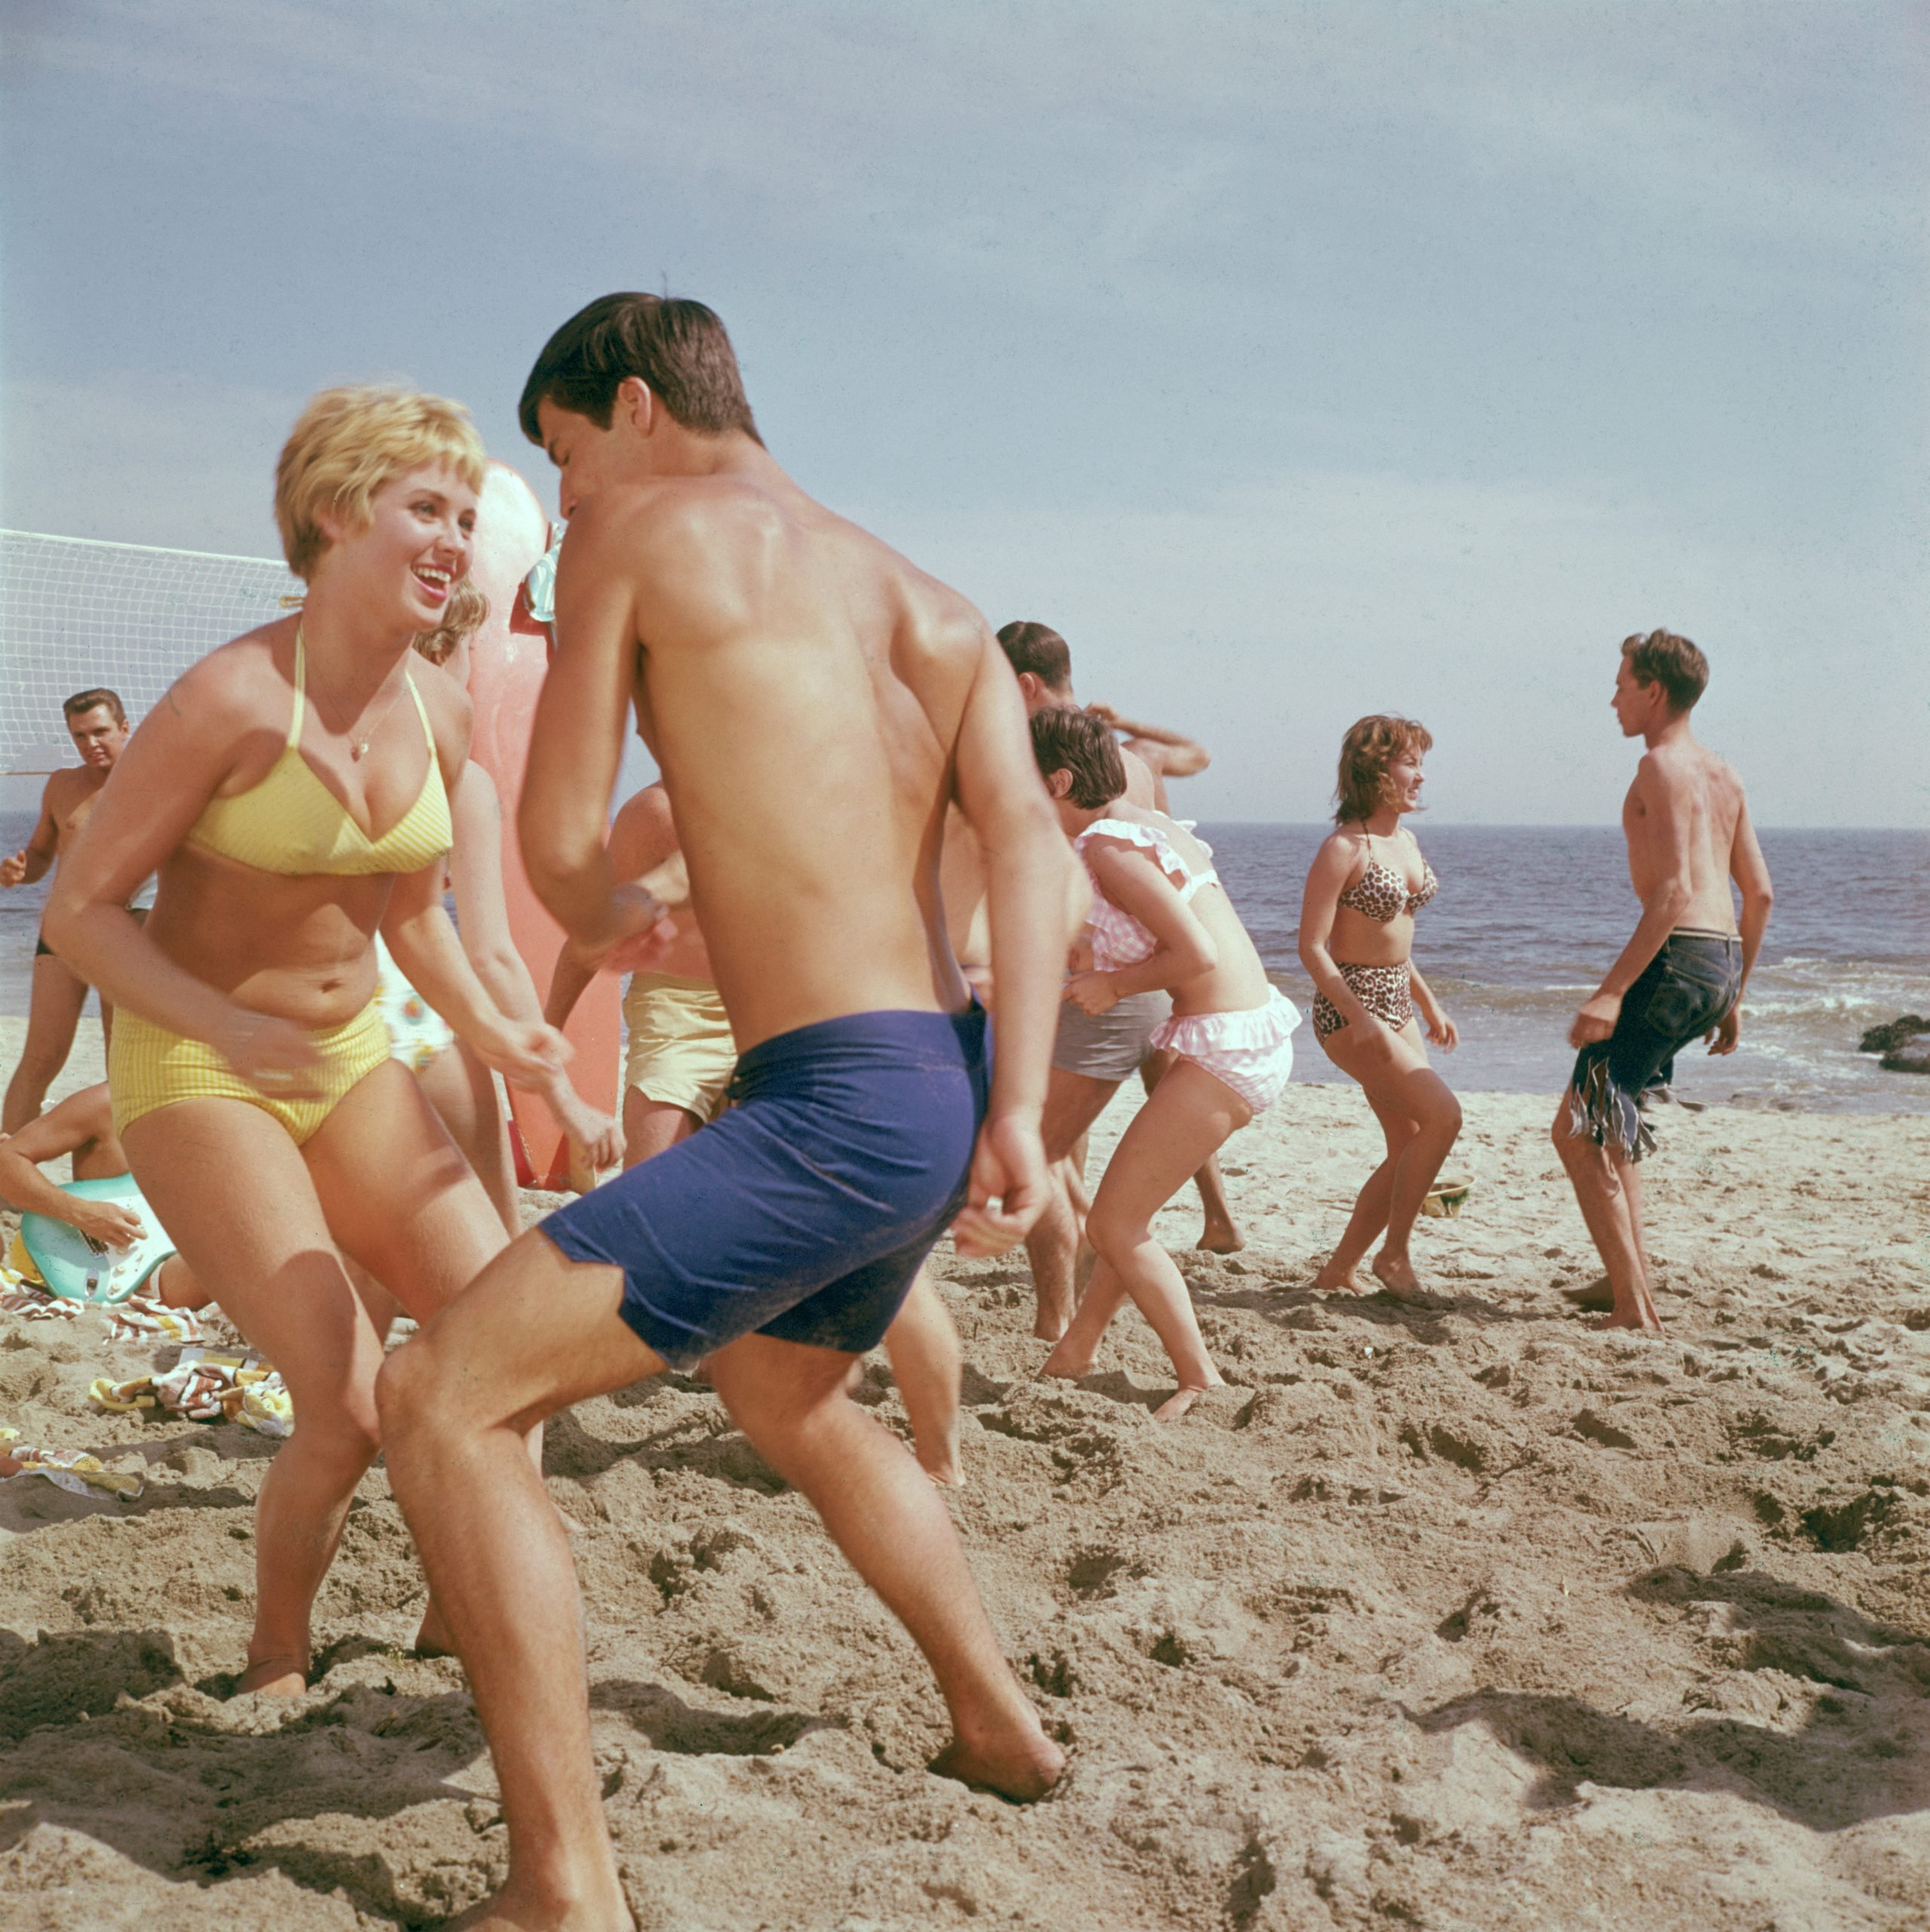 people dancing on a beach 1960s